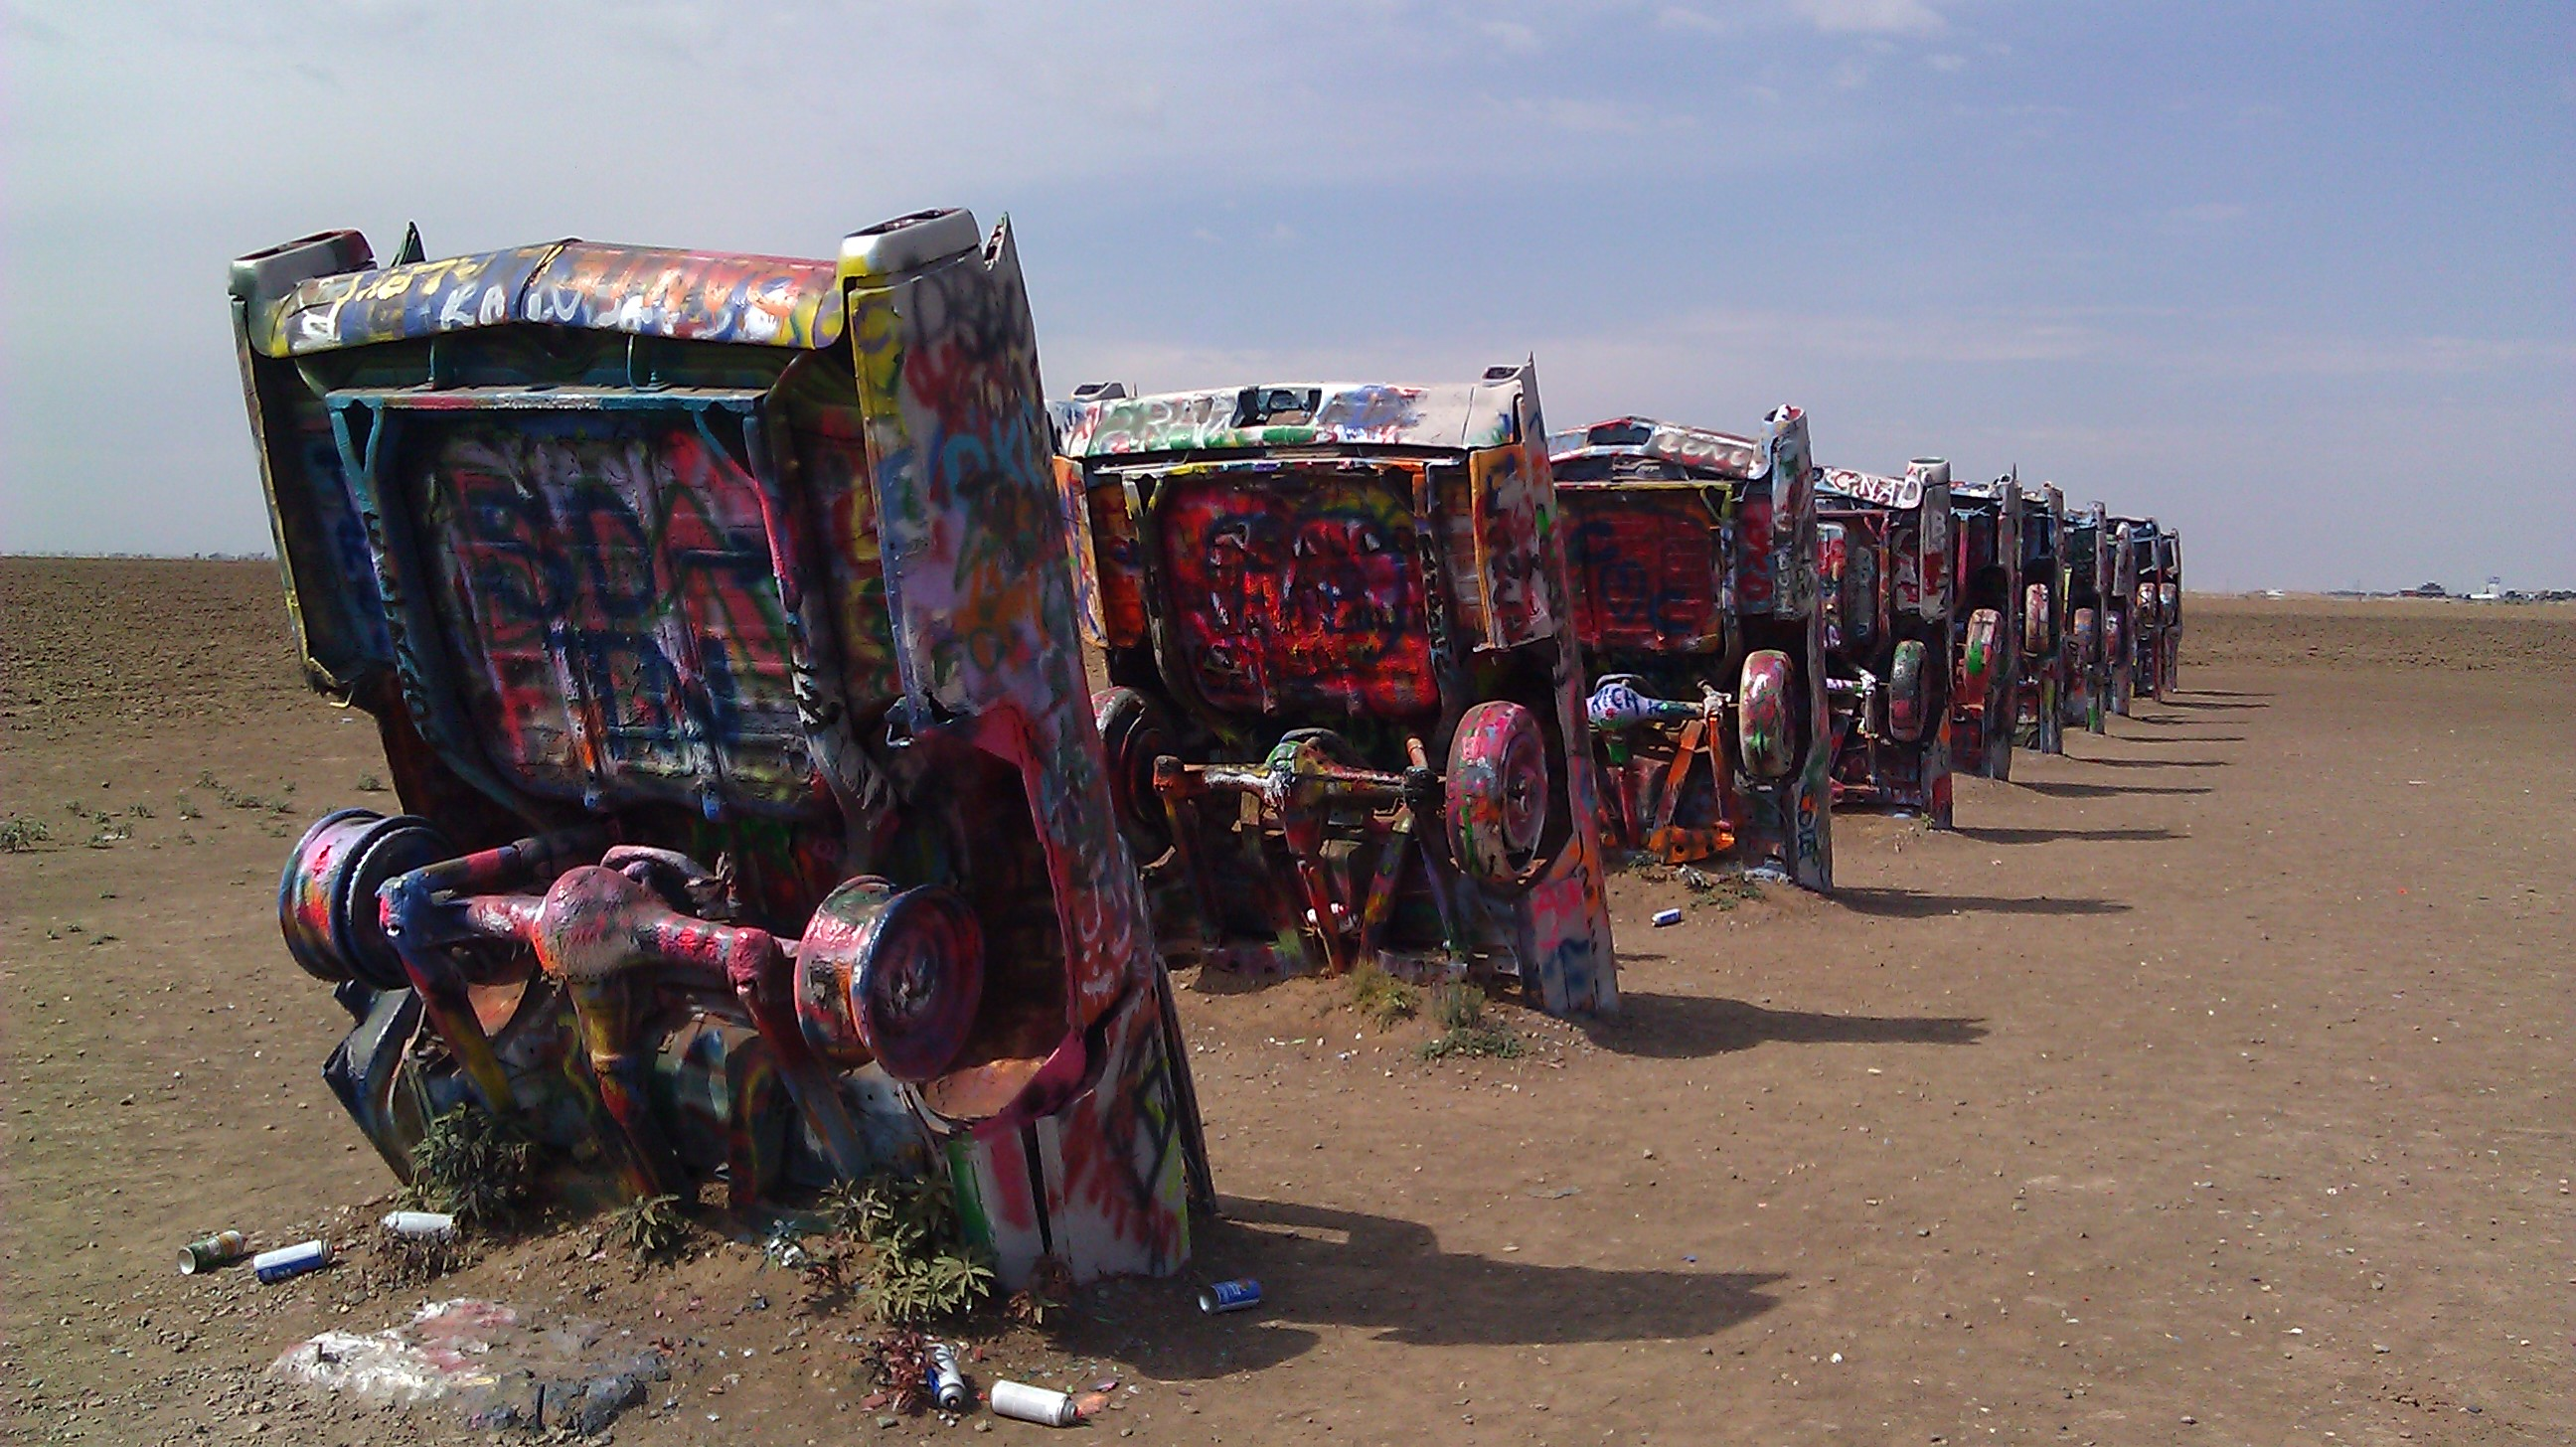 Road Trip! Wednesday, September 14, 2011-Cadillac Ranch | Roads Less Traveled